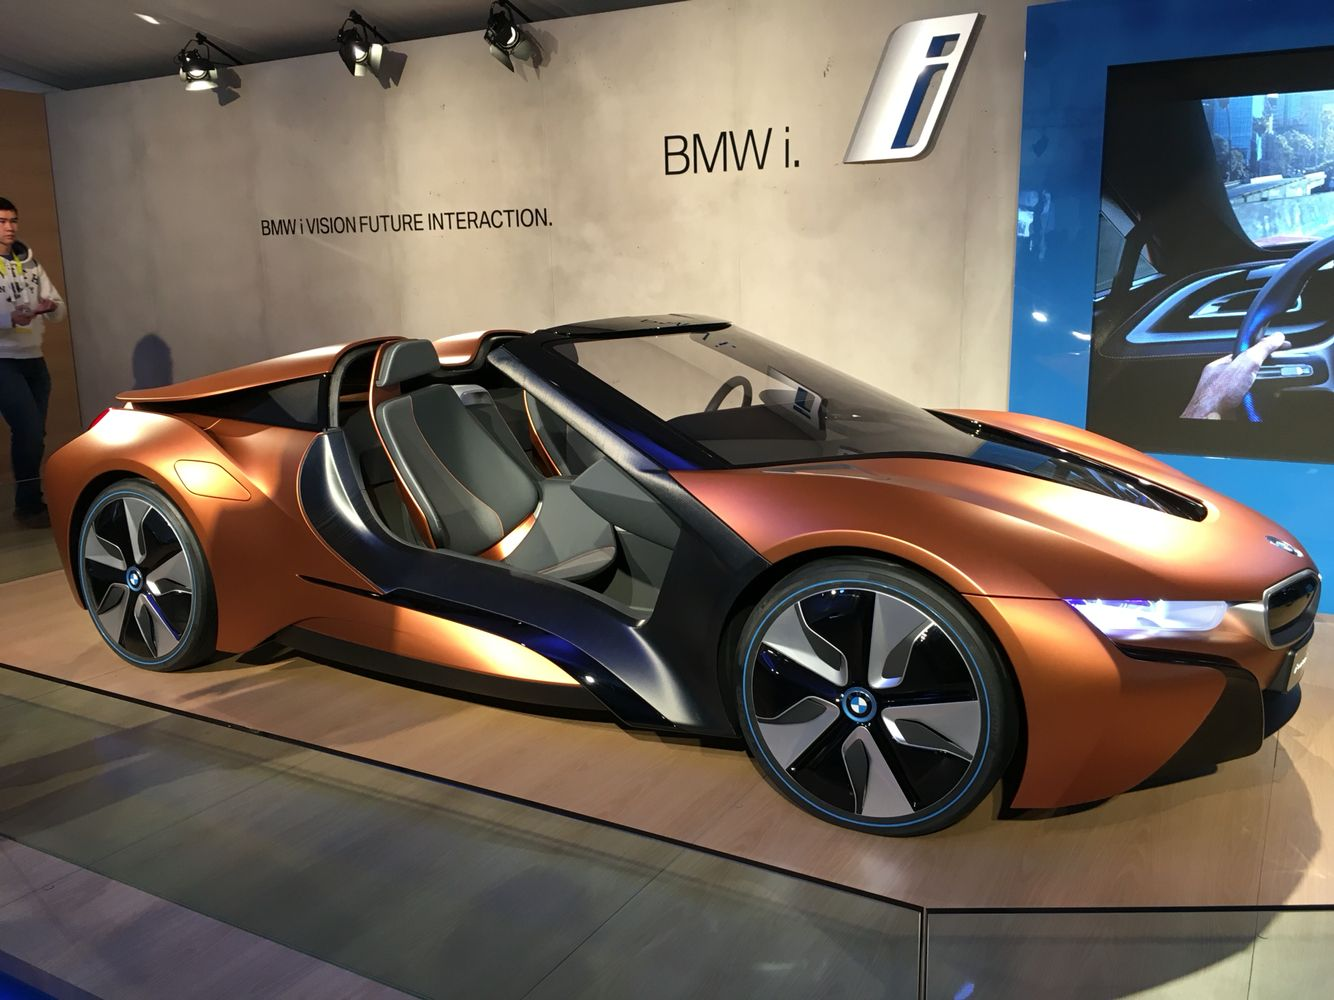 Bmw I8 Convertible Copper My Toys Pinterest Bmw I8 Copper And Convertible